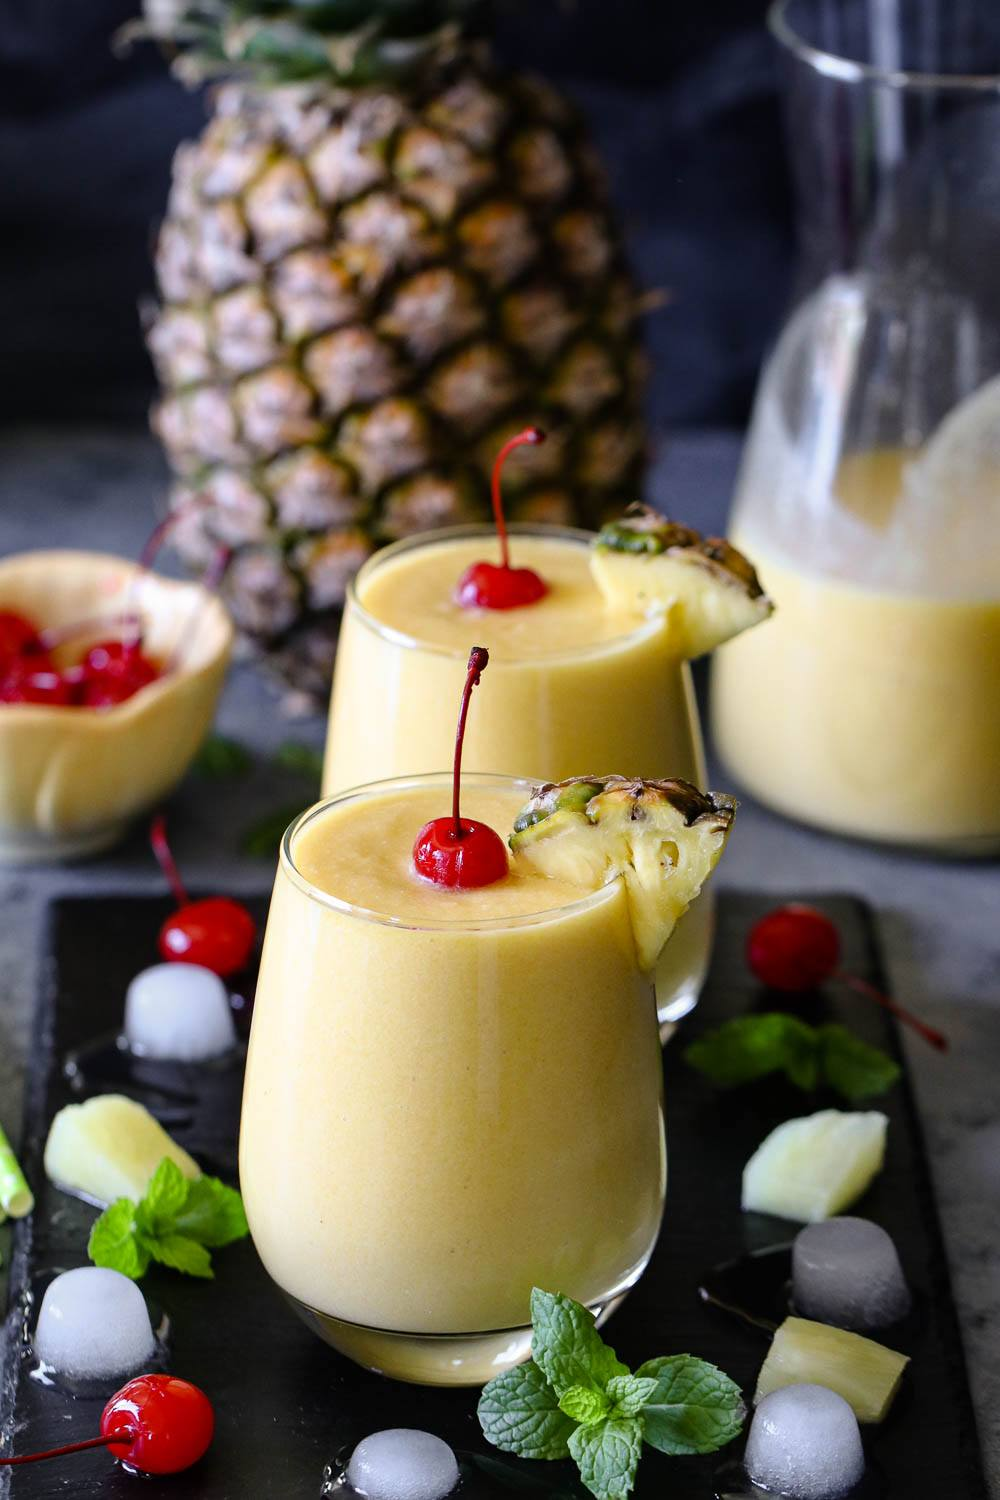 Pineapple Mango Piña Colada  with pineapple and cherries in the background.